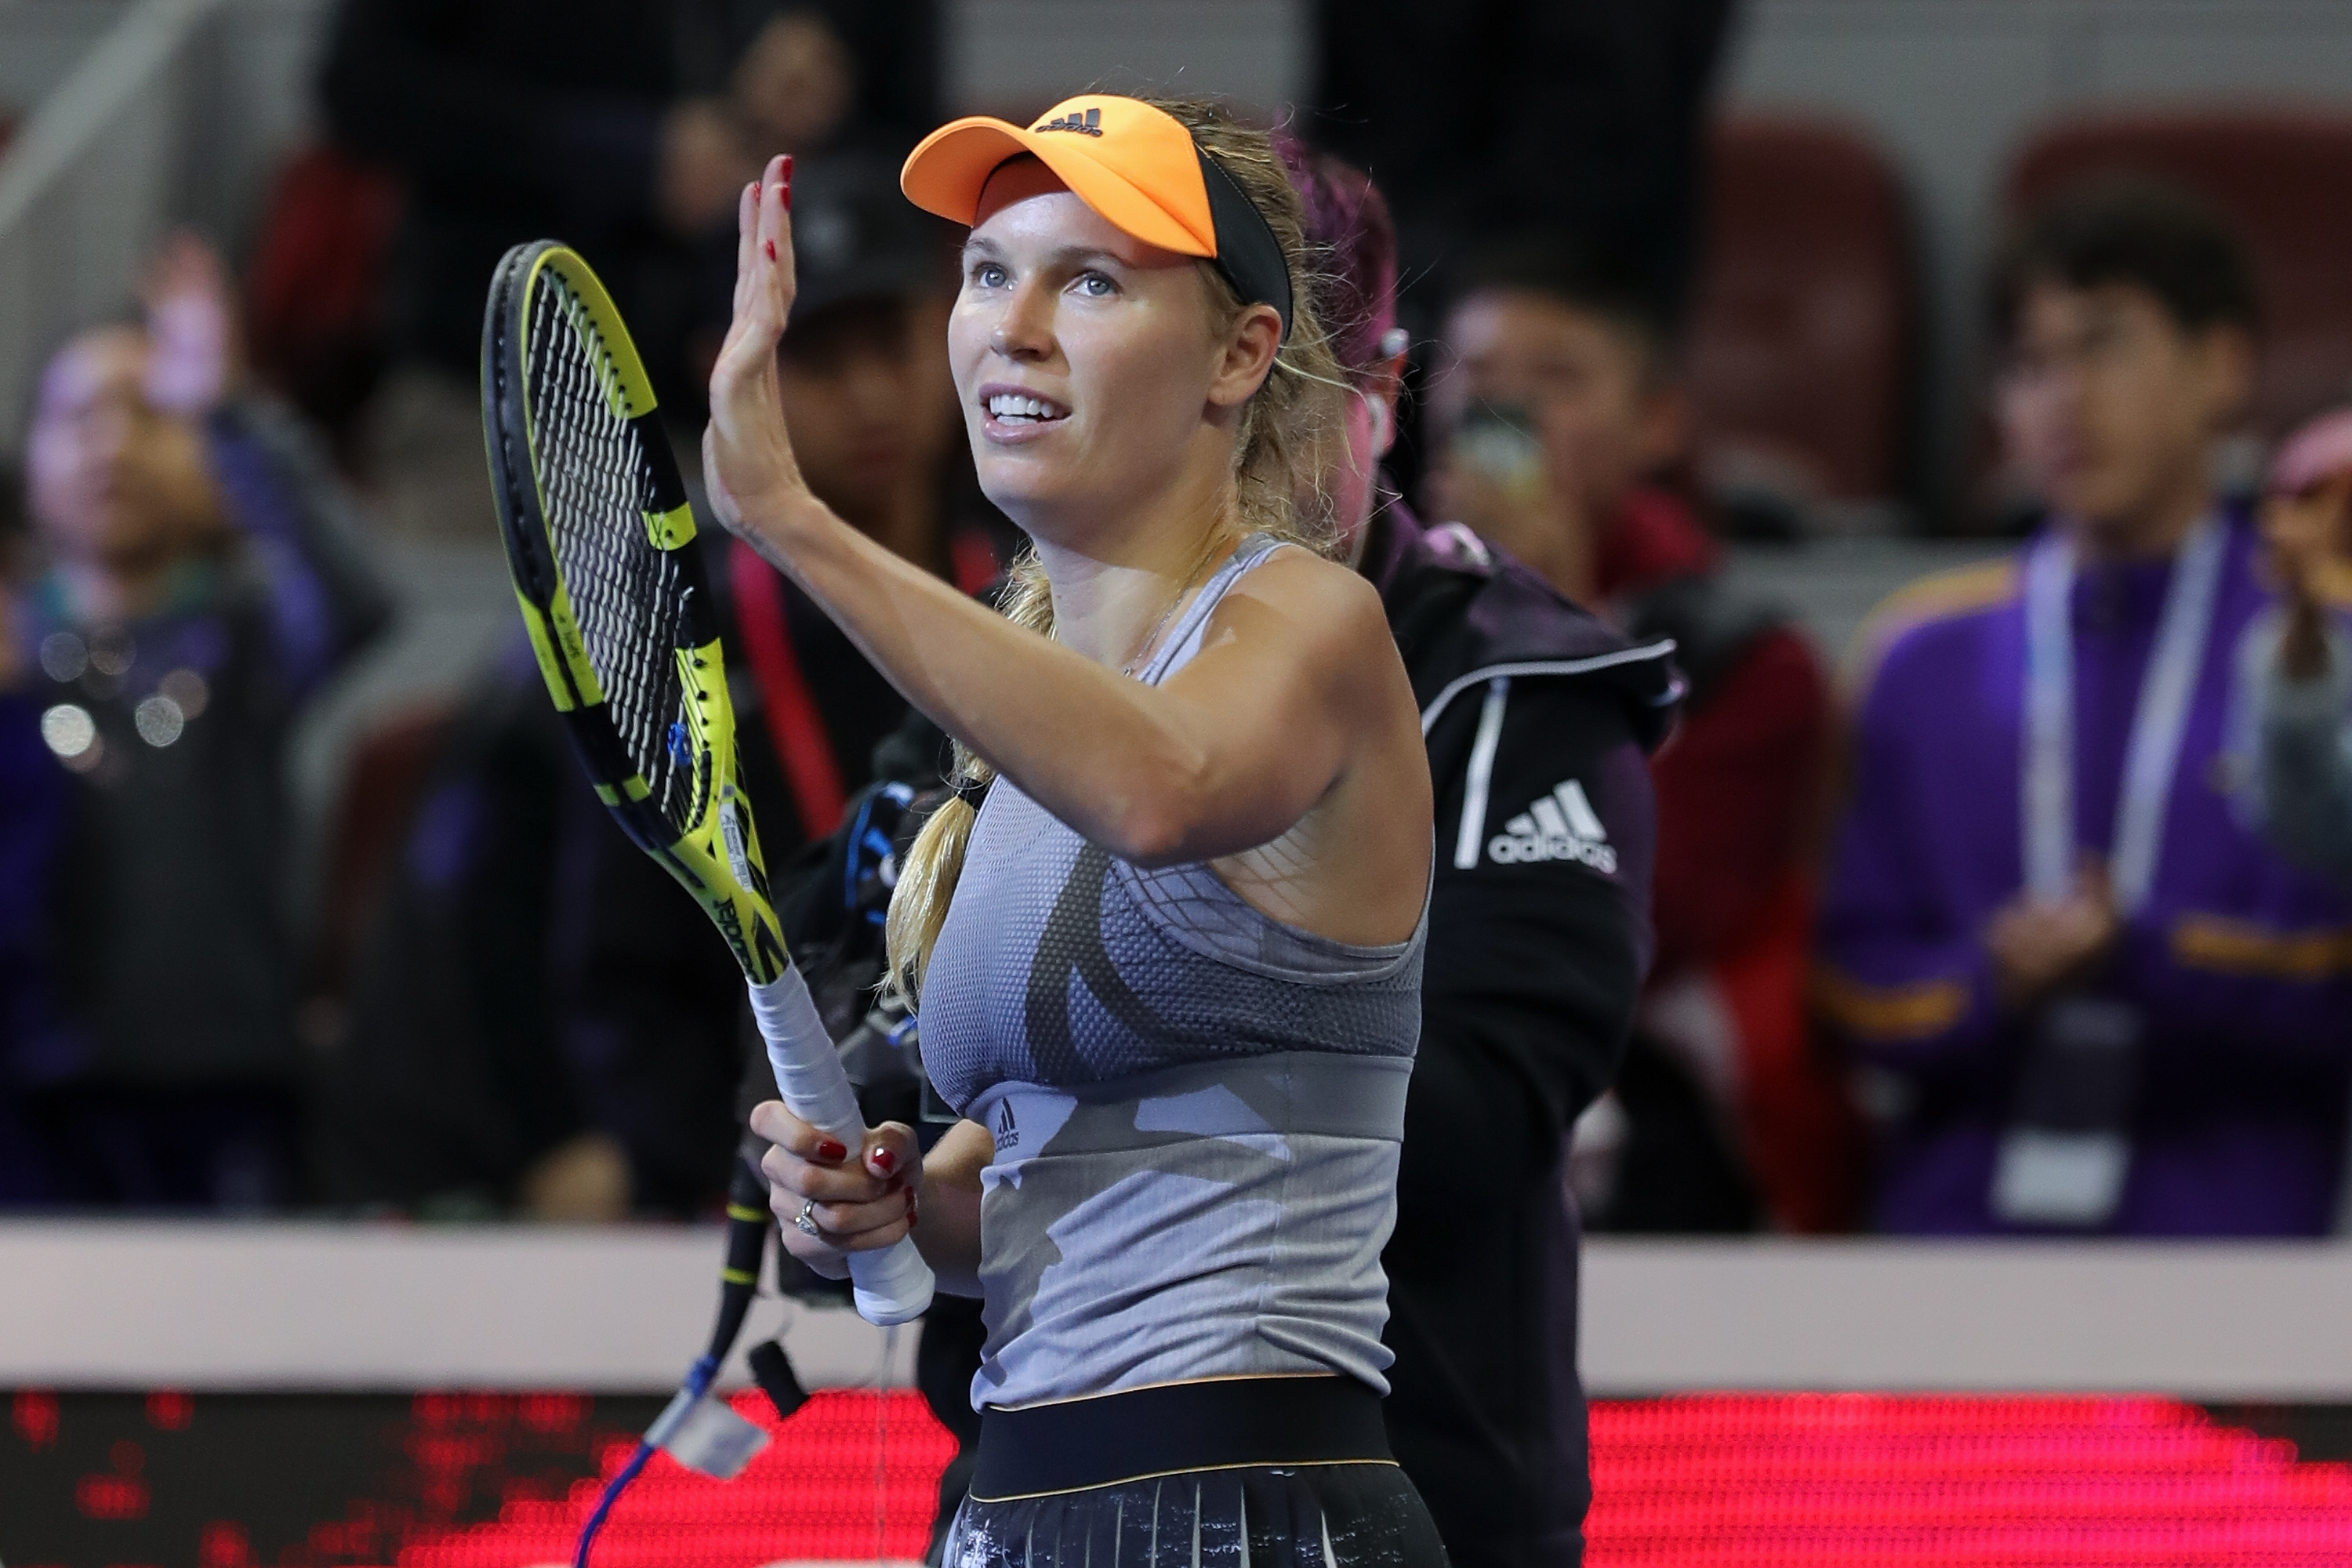 'An amazing career': Tennis world reacts to Wozniacki's retirement announcement